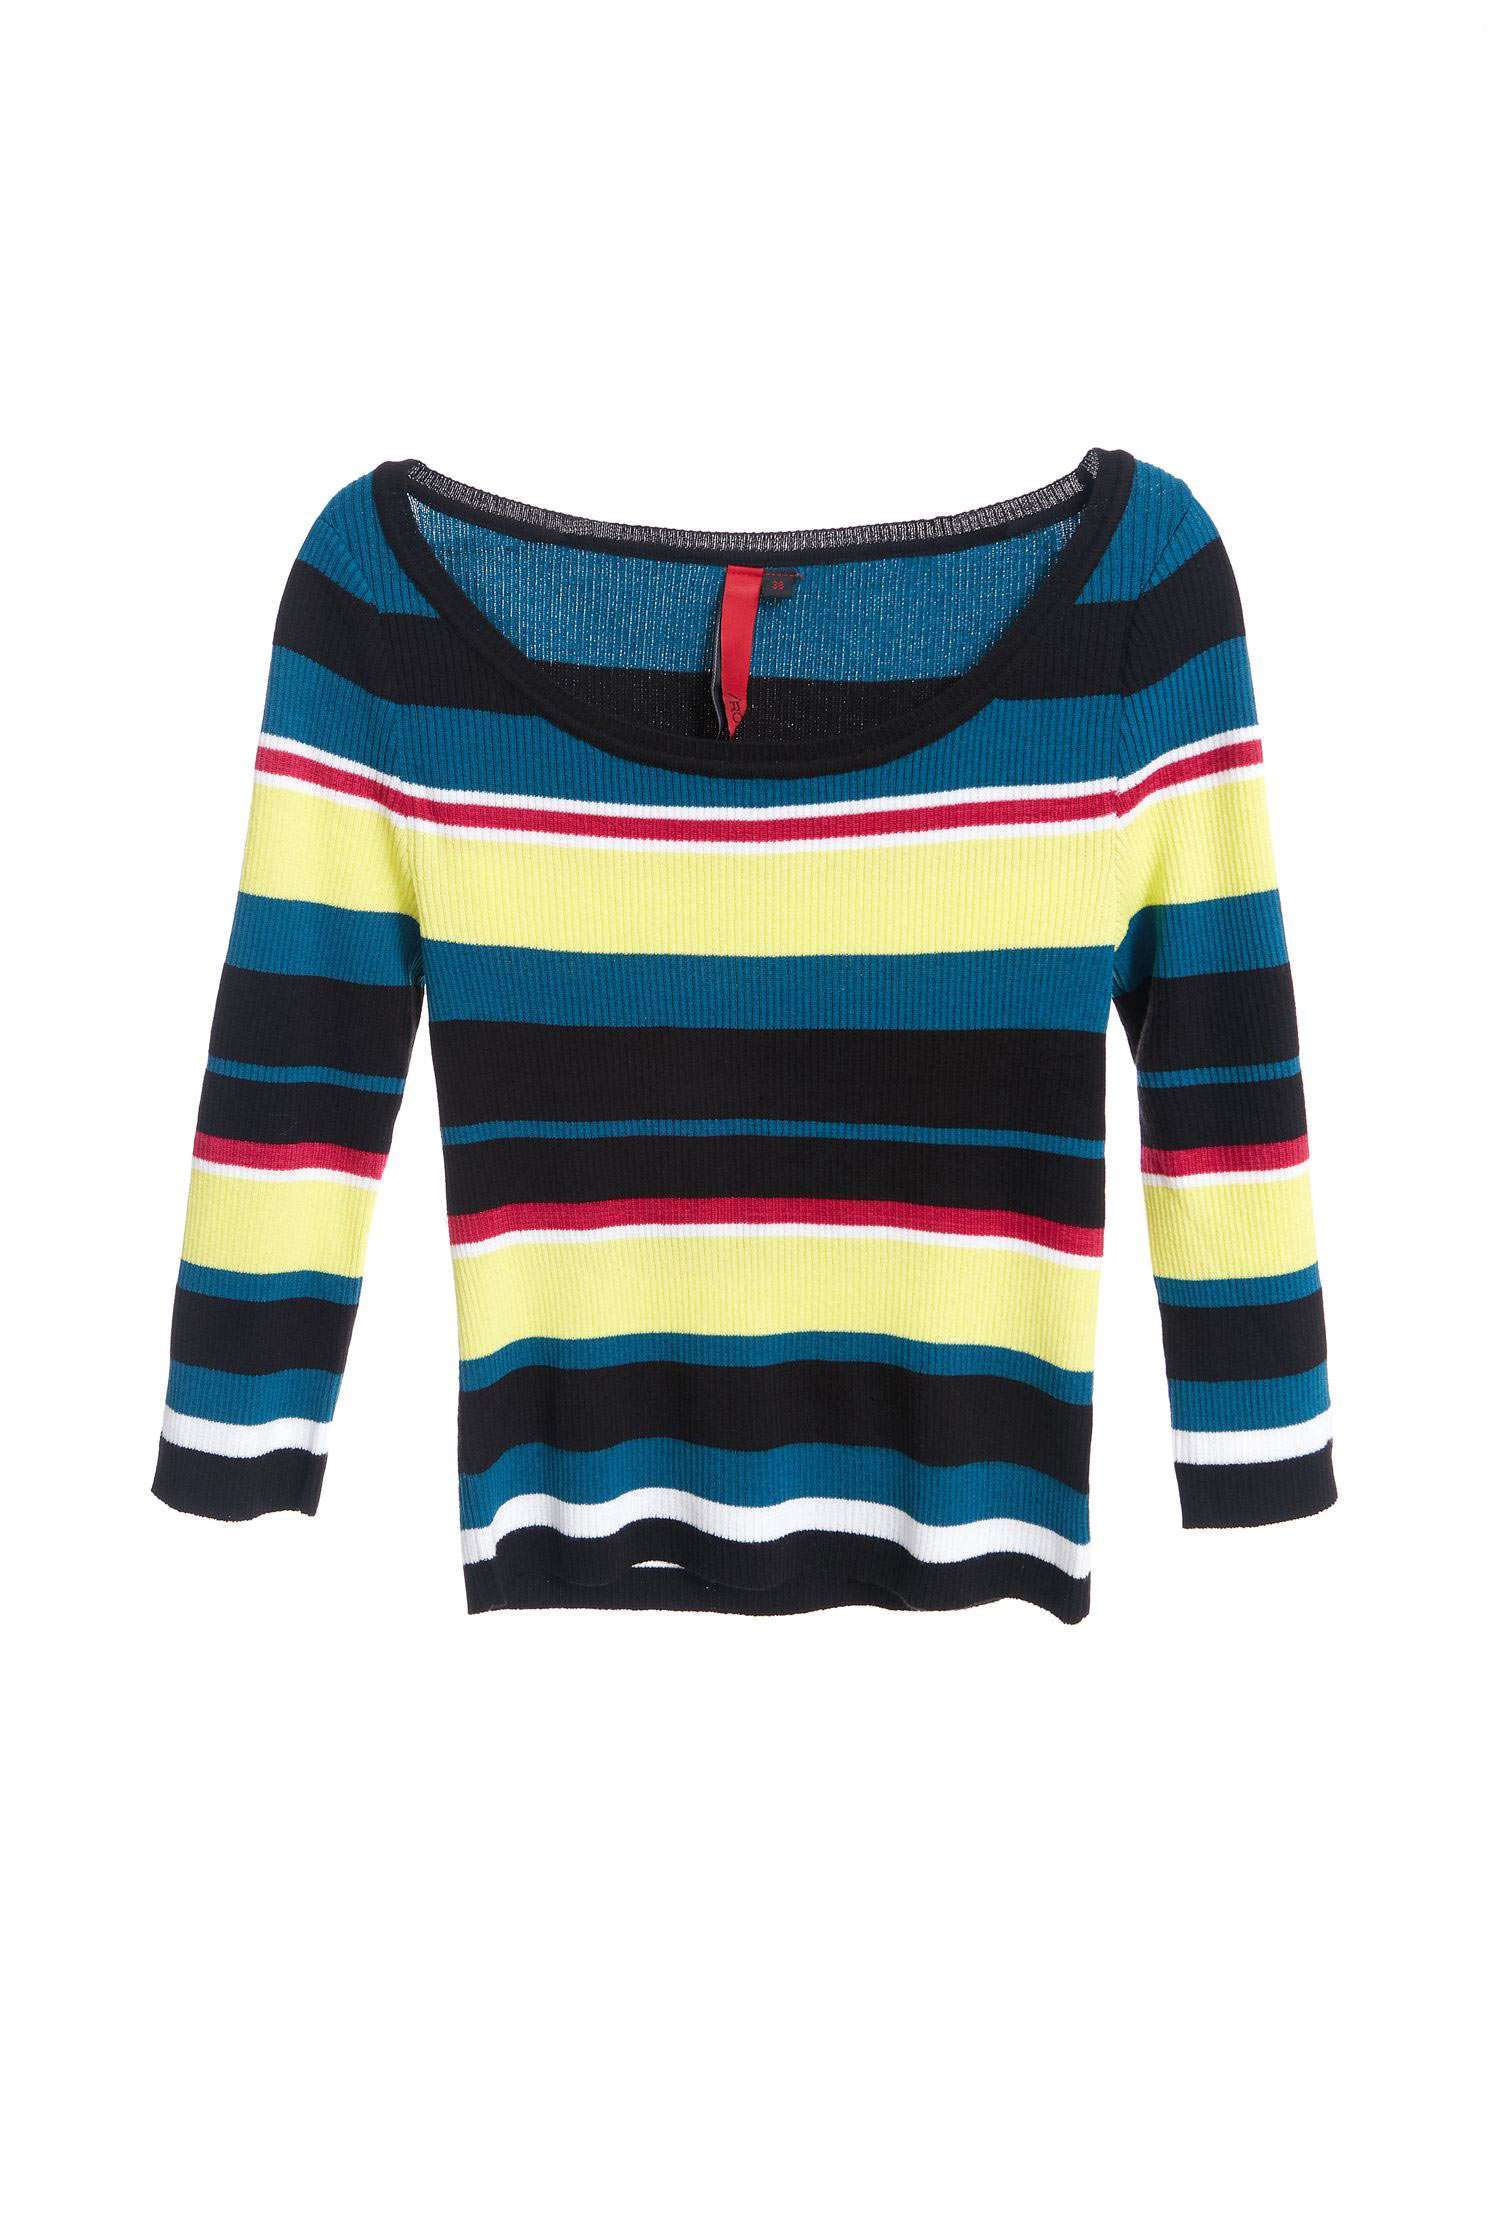 Stripped knitting top